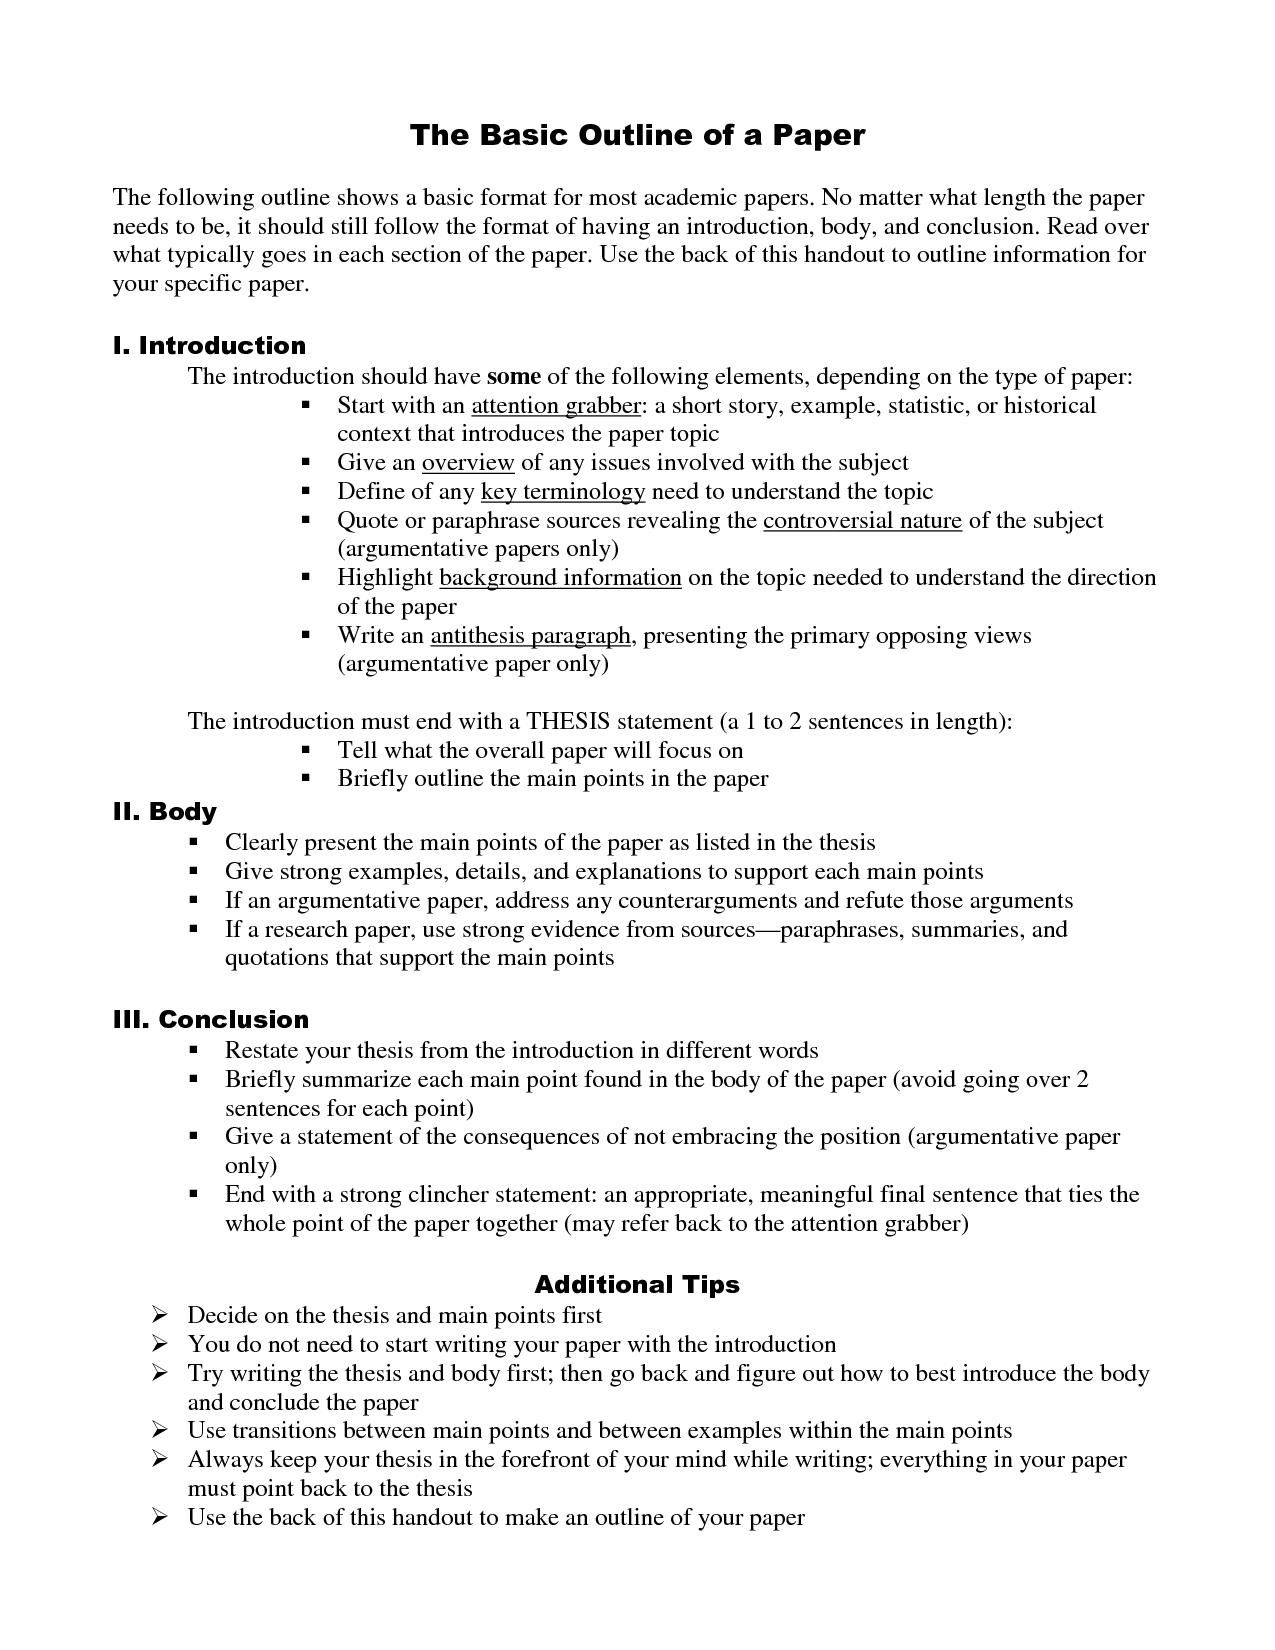 022 Introduction Of Research Paper Sample Apa Outline Free With Regard To Apa Researc Research Paper Outline Template Apa Research Paper Research Paper Outline